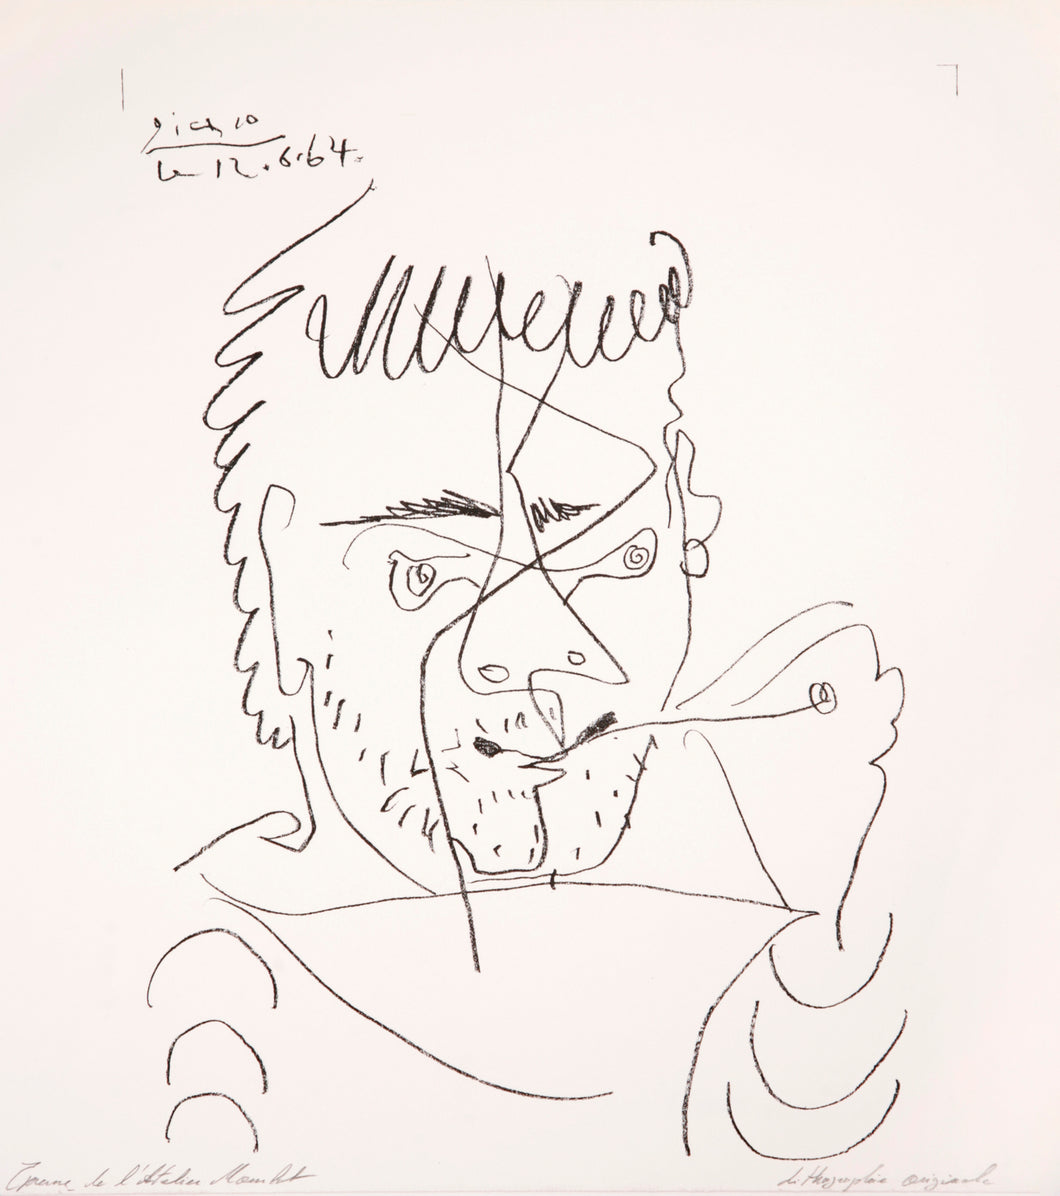 The Smoker, Daniel Henri Kahnweiler by Pablo Picasso 1964